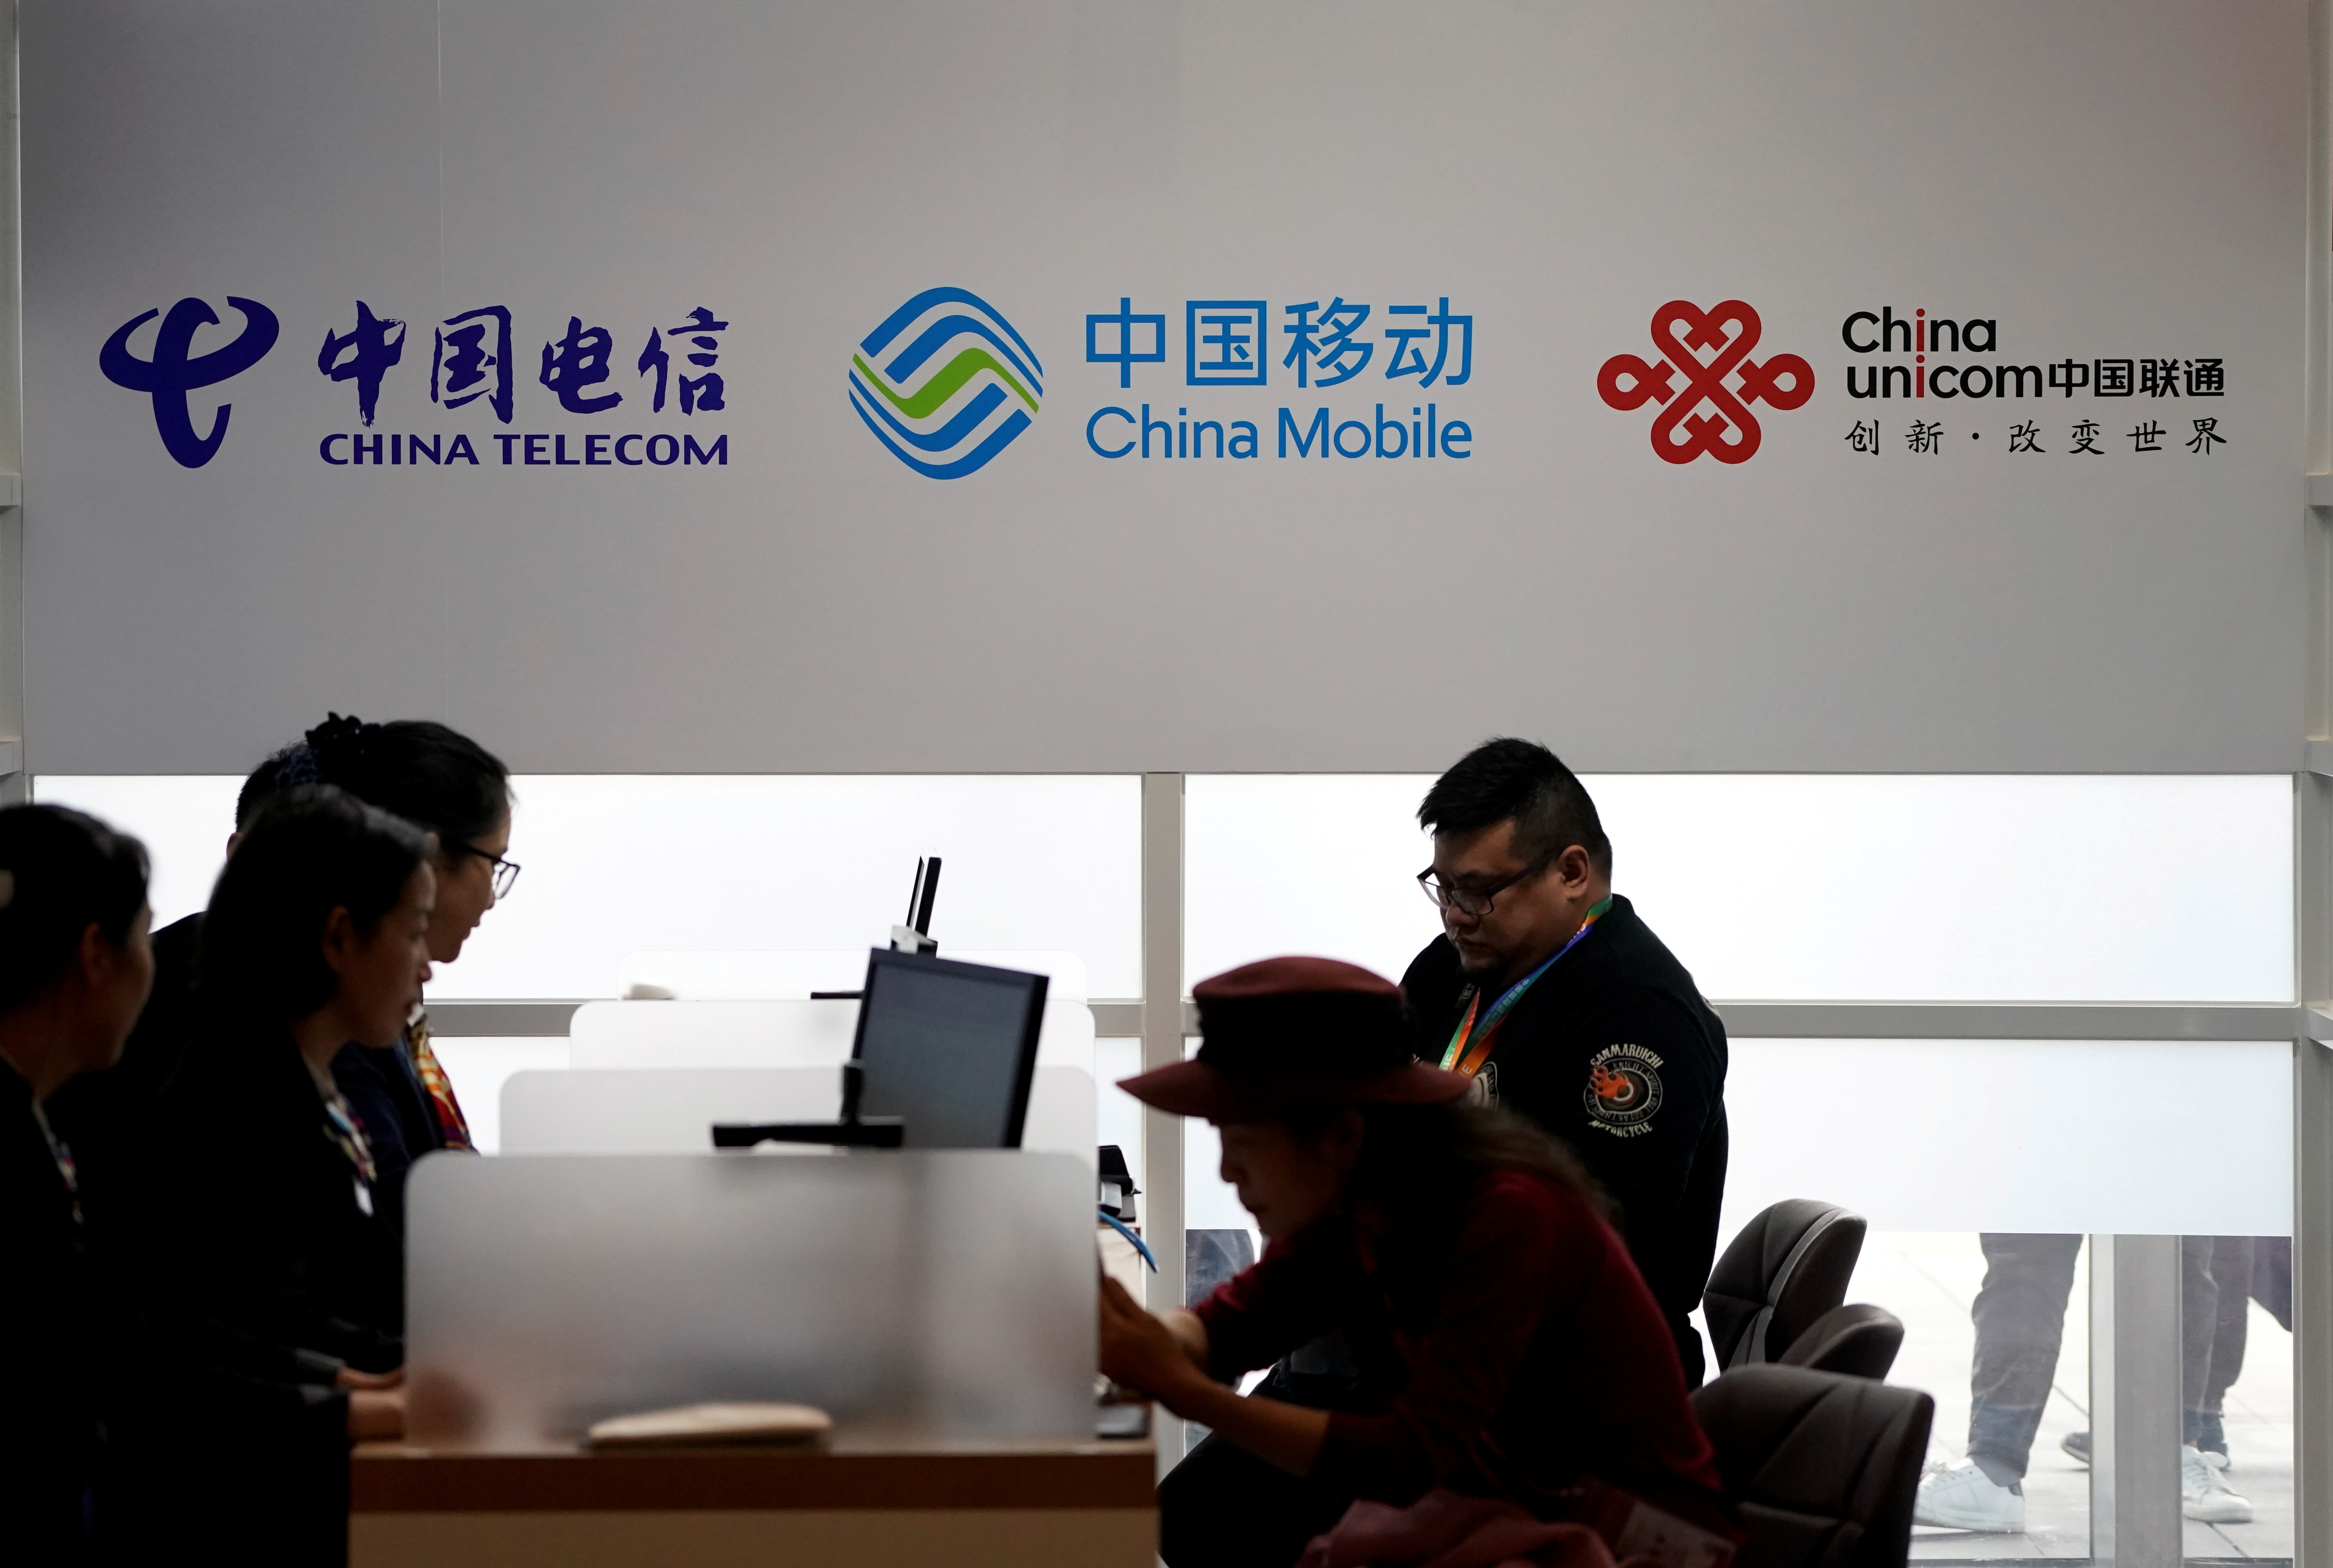 Signs of China Telecom, China Mobile and China Unicom are seen during the China International Import Expo (CIIE) at the National Exhibition and Convention Center in Shanghai, China, Nov. 5, 2018. REUTERS/Aly Song